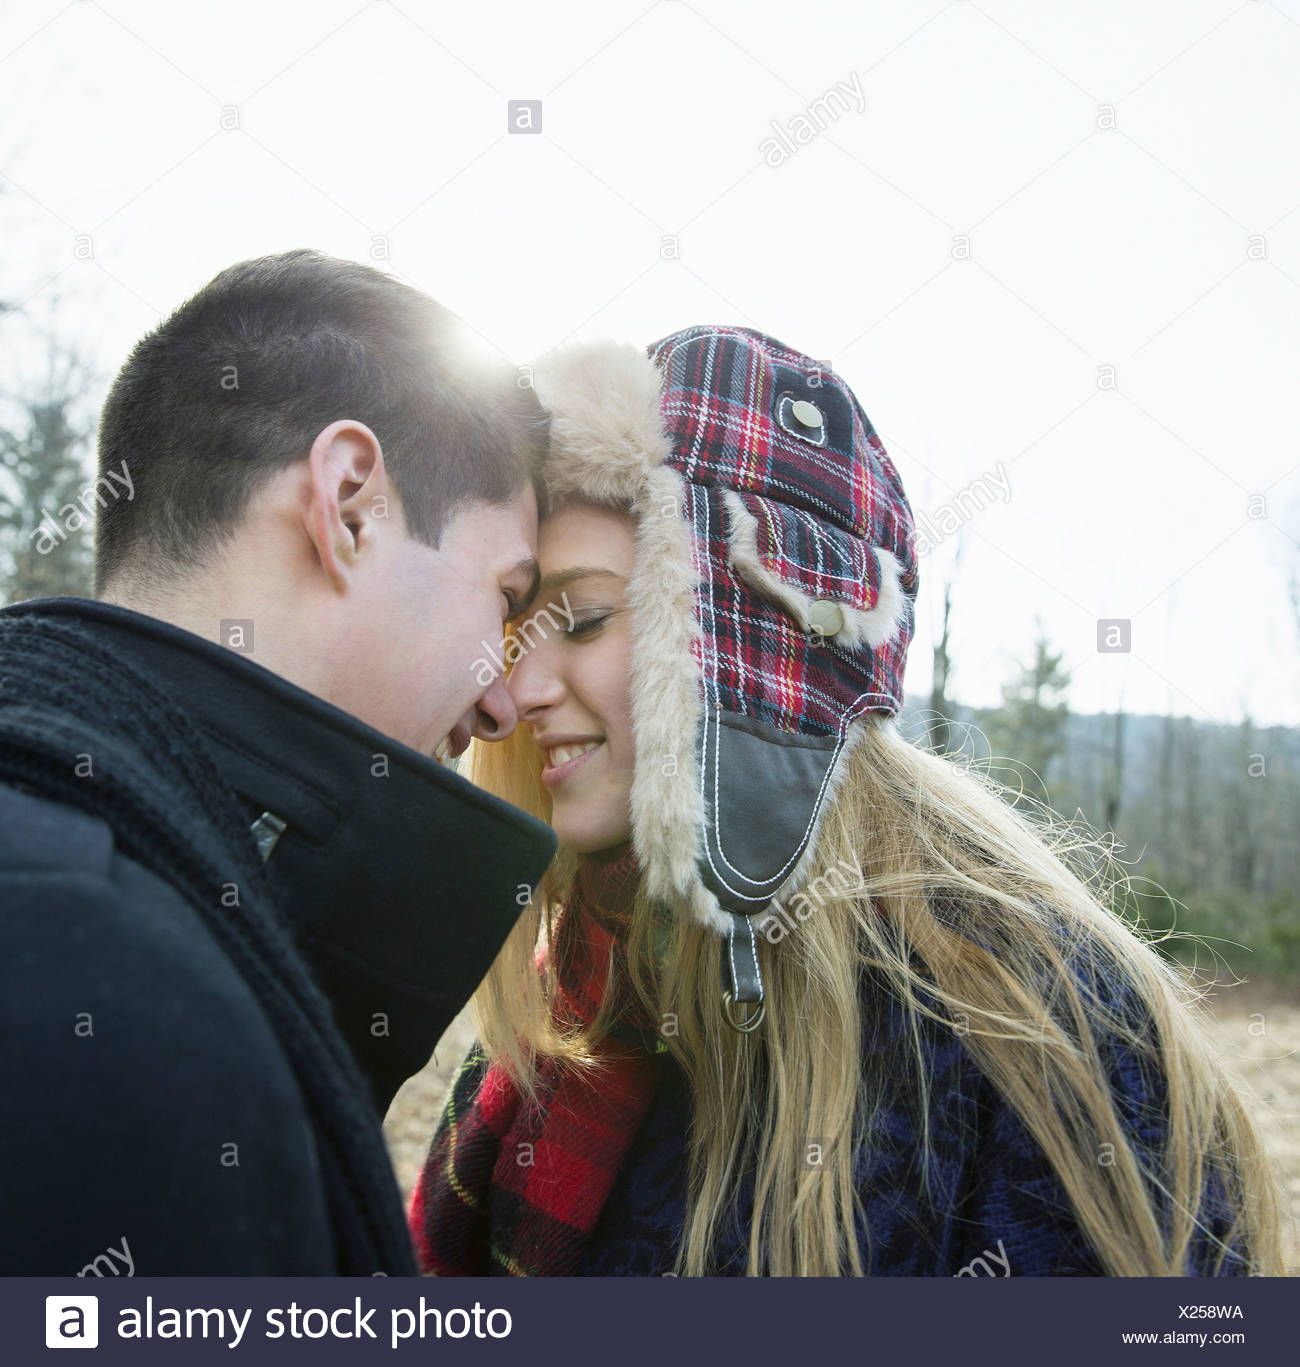 A couple young man and woman face to face embracing outdoors on a cold winter day - Stock Image